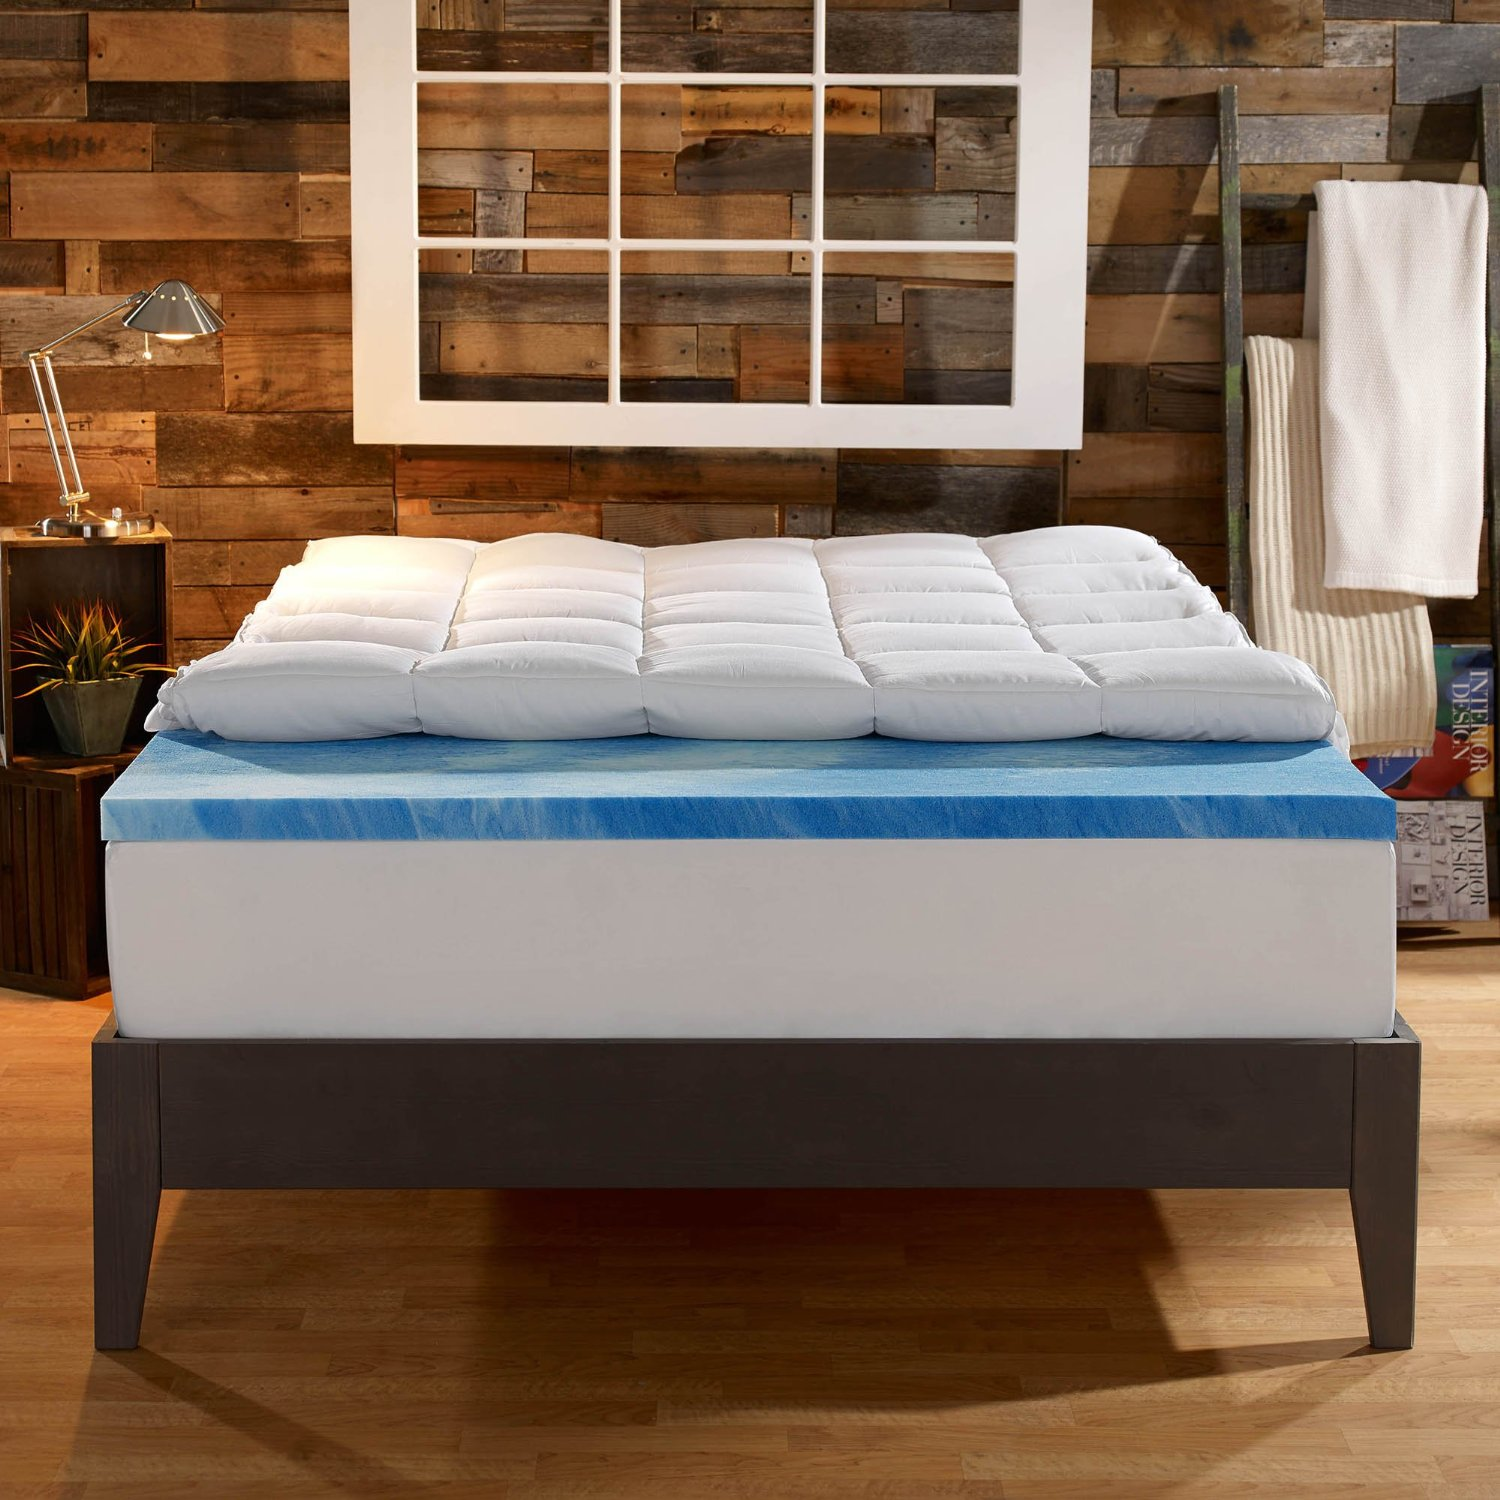 best mattress topper for side sleepers slumberist best mattress topper for side sleepers - Extra Firm Mattress Topper